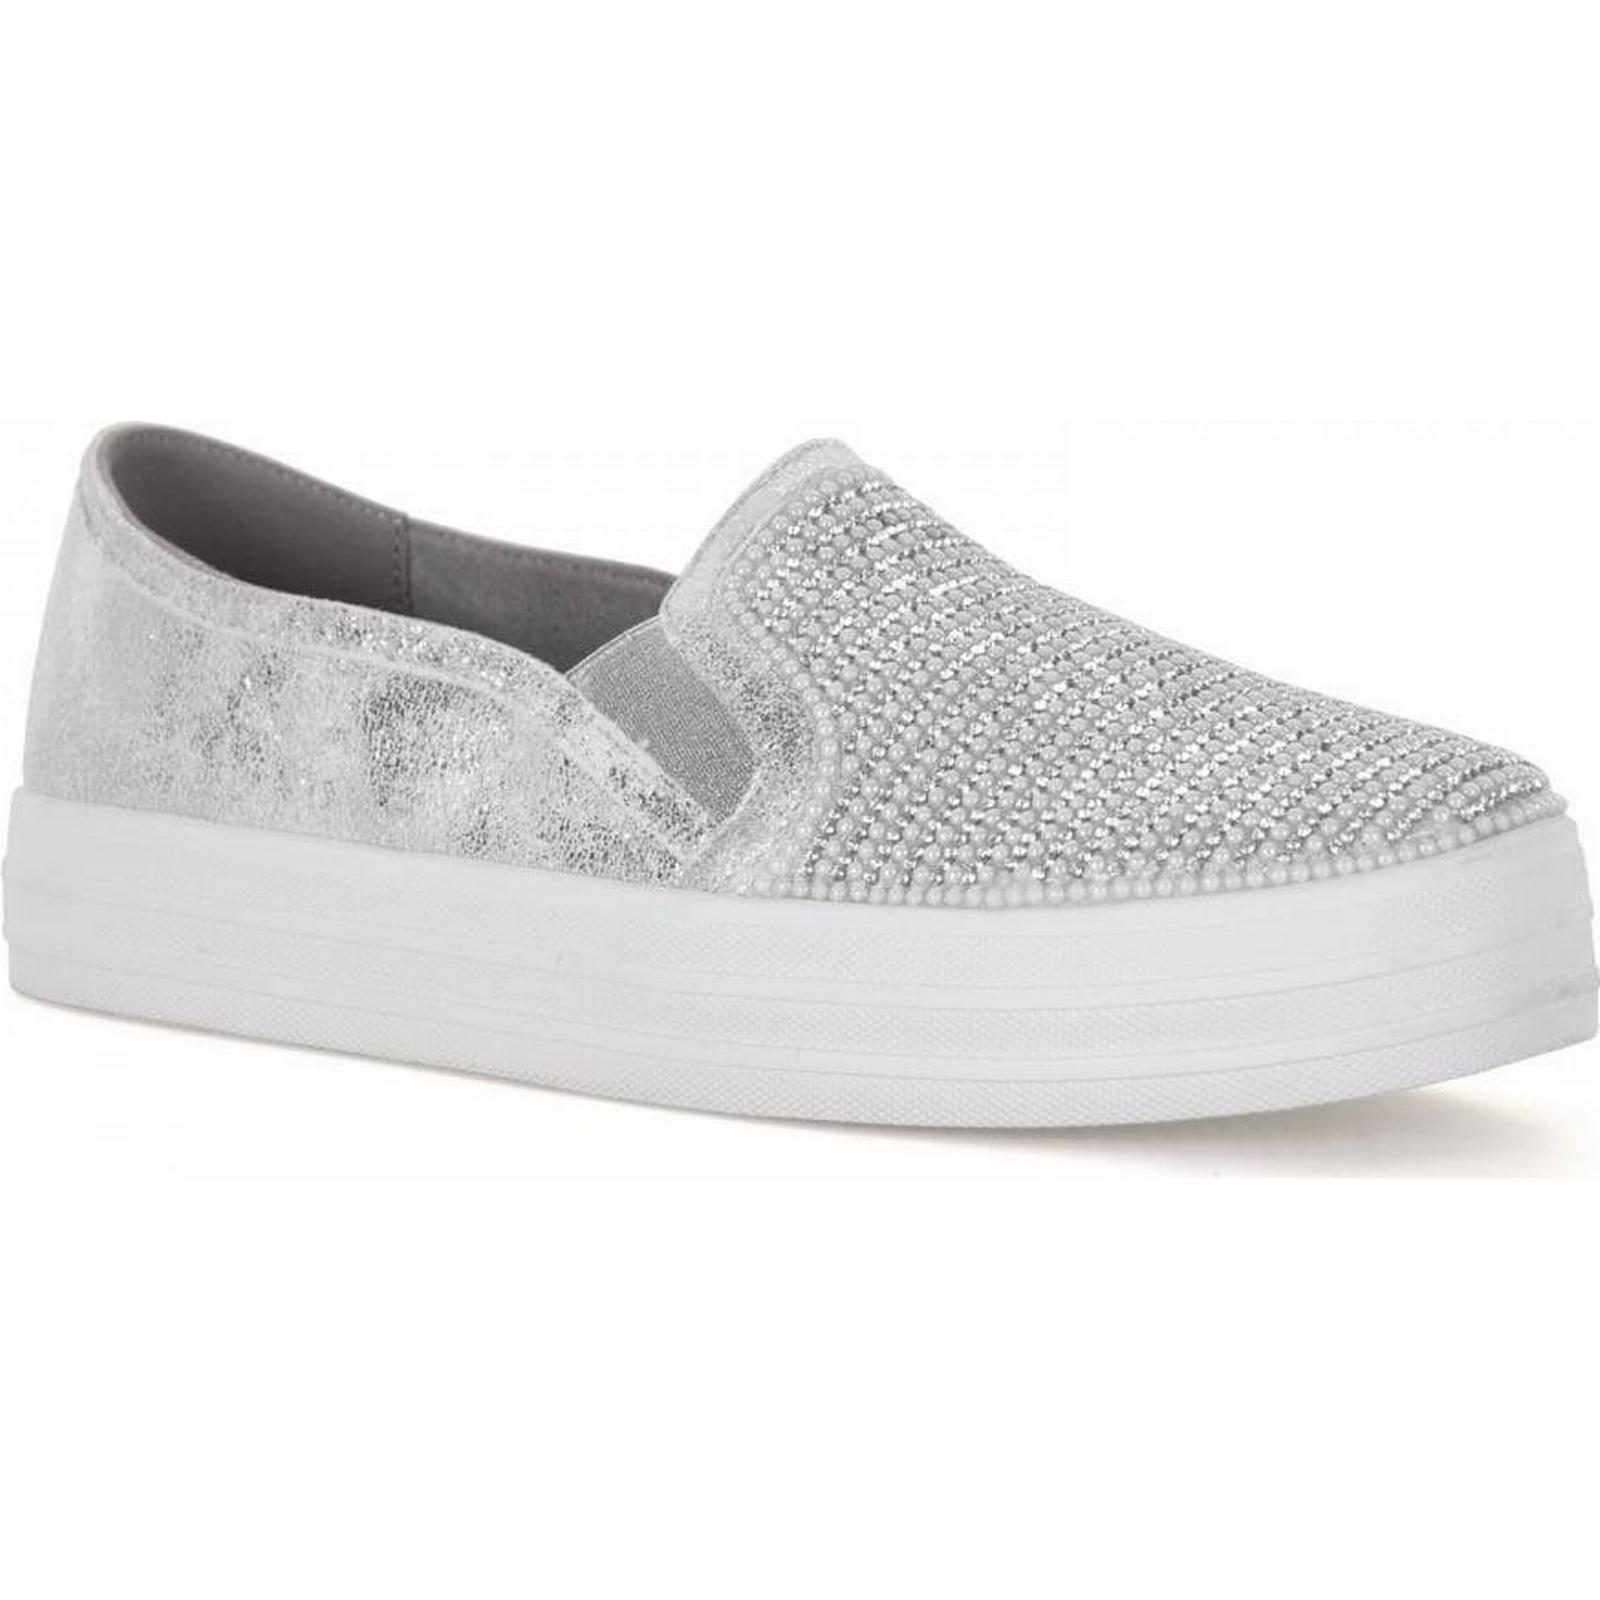 Skechers Slip-on Womens Double Shiny Dancer Slip-on Skechers Trainers (Silver) Colour: 4b722d